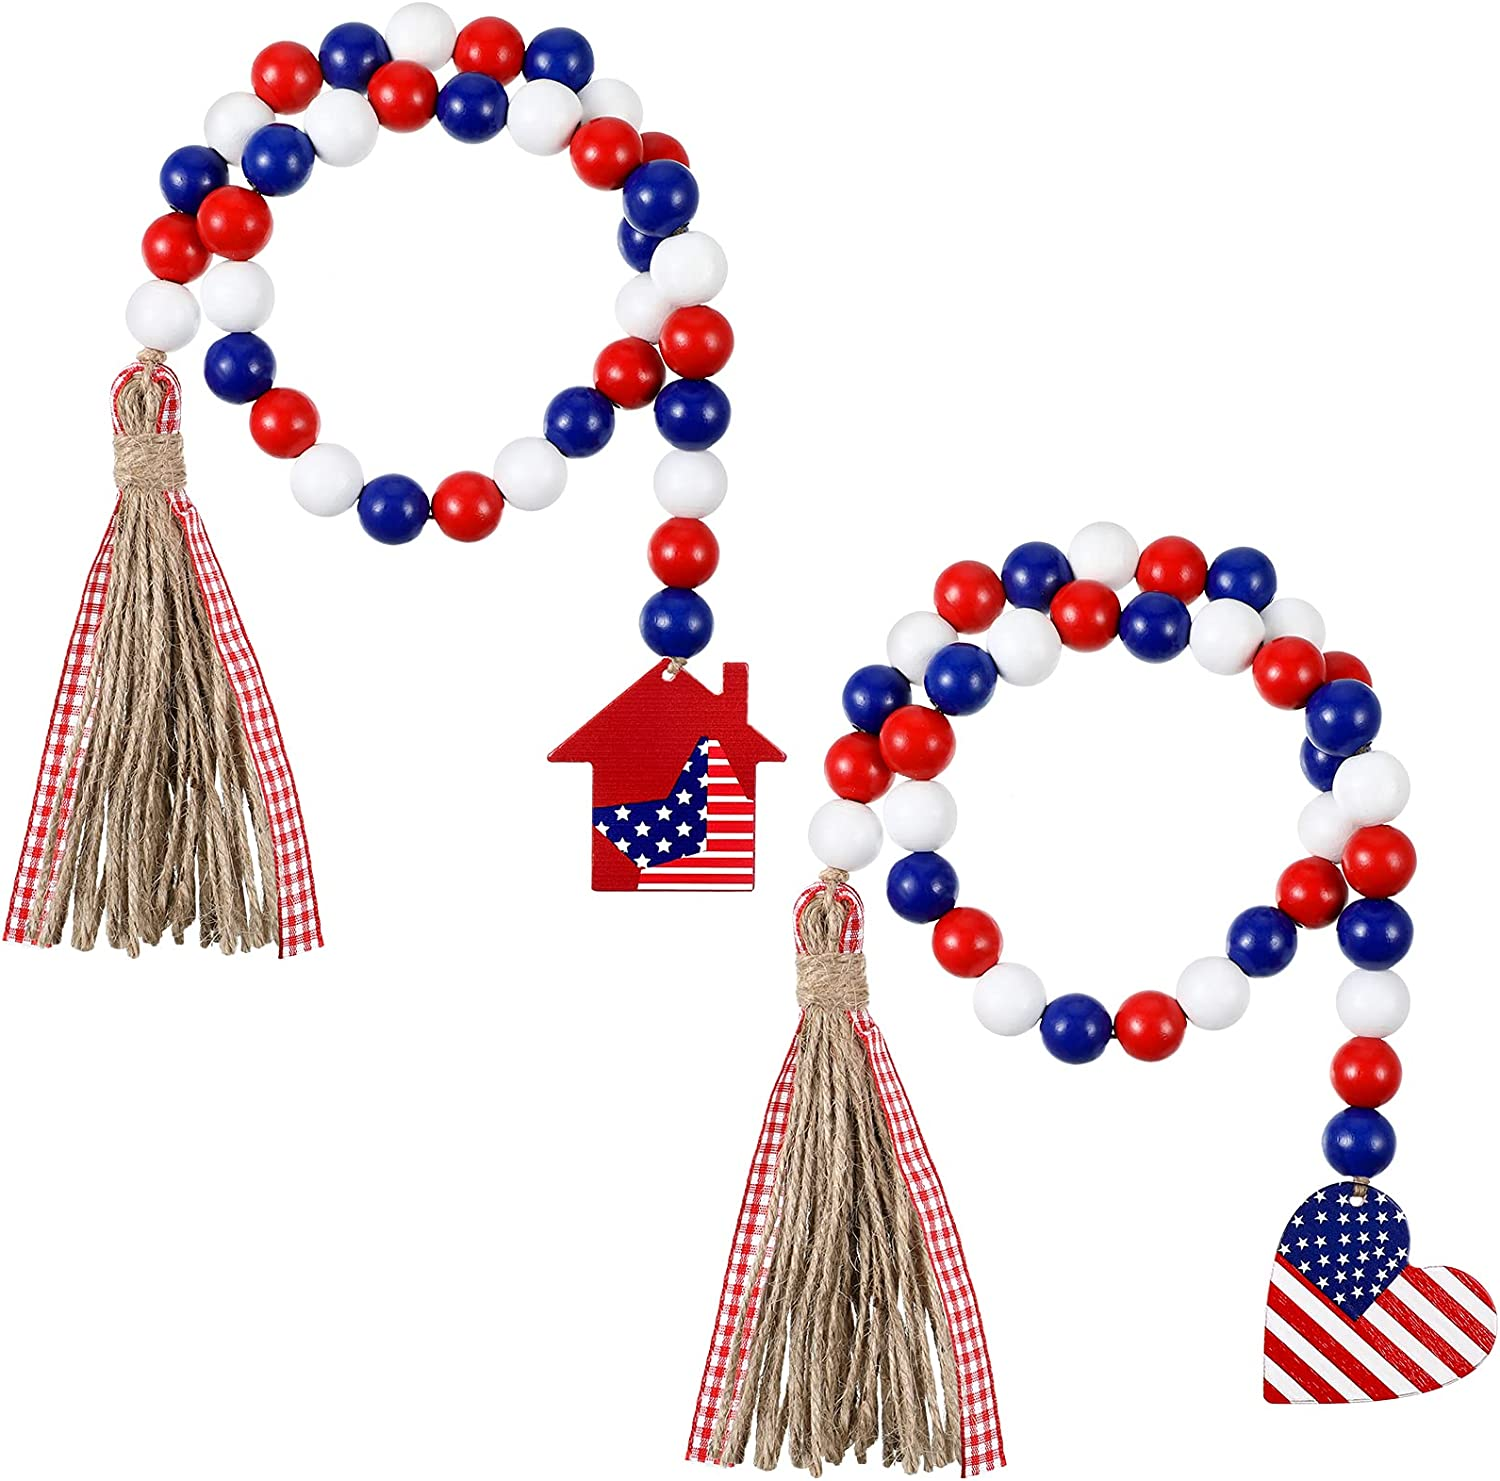 2 Pieces Independence Day Patriotic Wood Bead Garland with American Flag, Farmhouse Wall Hanging Prayer Beads with House Heart House Shaped Flag Tags Plaid Rustic Tassel Tray Decor for 4th of July